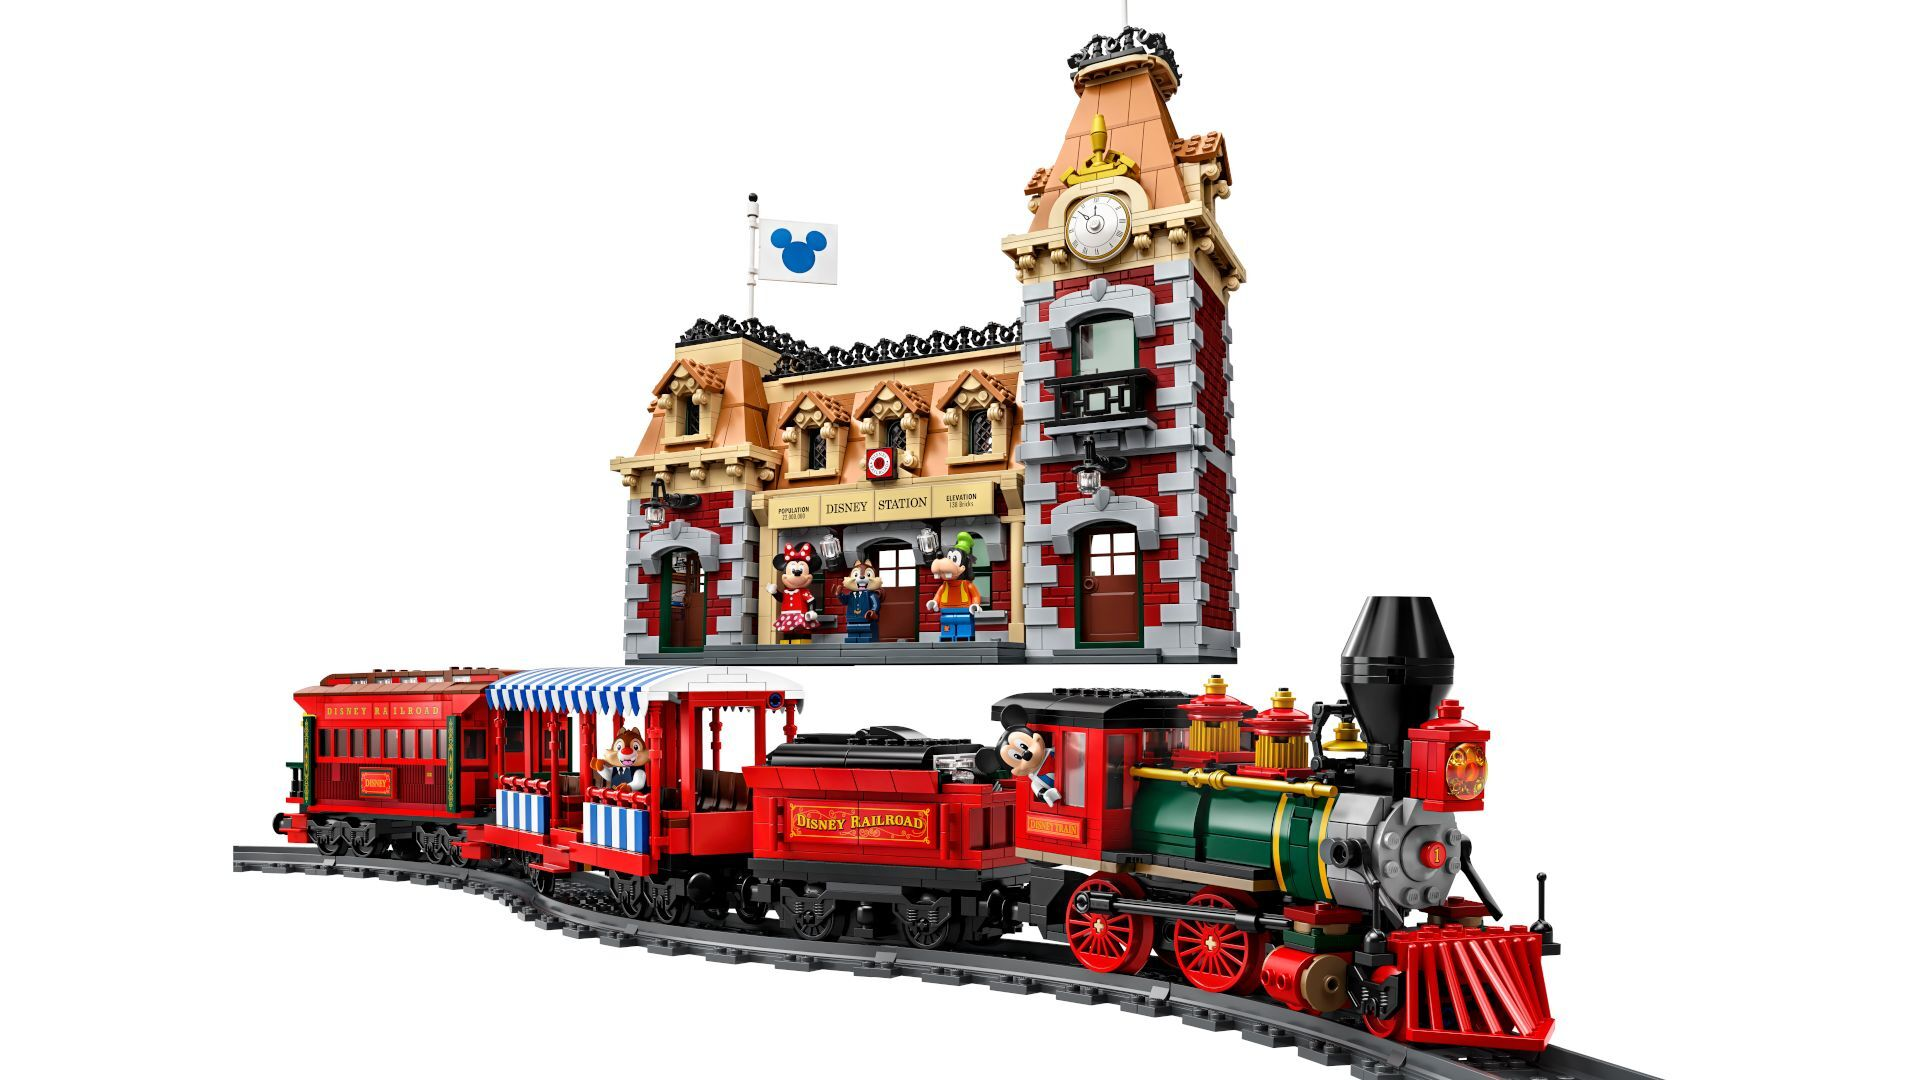 You can go on a magical train ride with LEGO's new Disney set